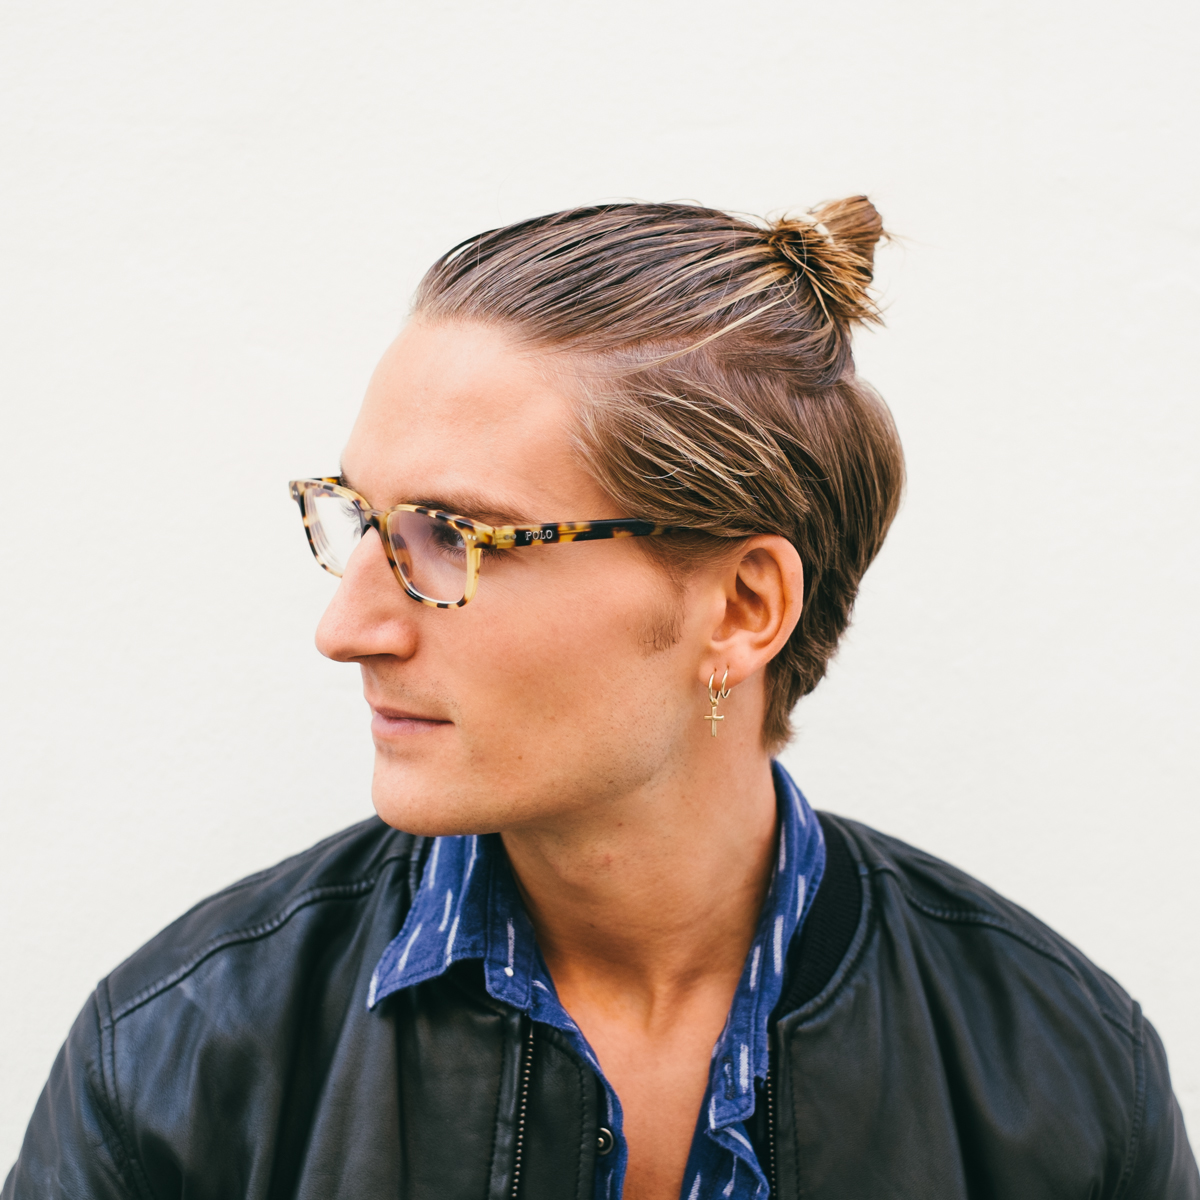 Man Bun Top 25 Man Buns